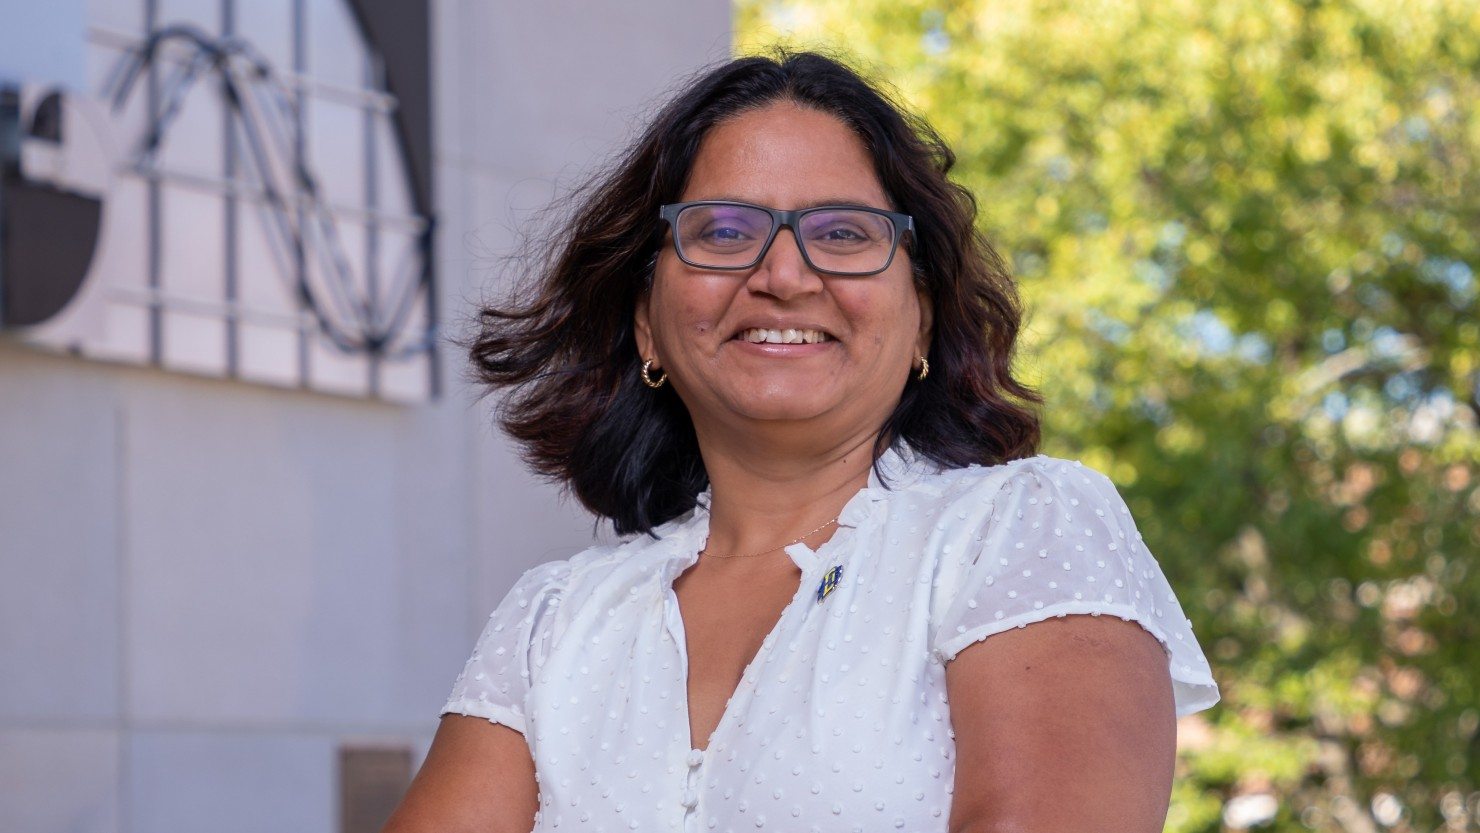 South Dakota State University assistant professor Anamika Prasad is the first Department of Mechanical Engineering faculty member to receive the prestigious National Science Foundation CAREER award, which supports innovative research by early-career faculty. Through the five-year, $531,740 grant, Prasad will use plants as an inspiration for designing and developing flexible composite materials.